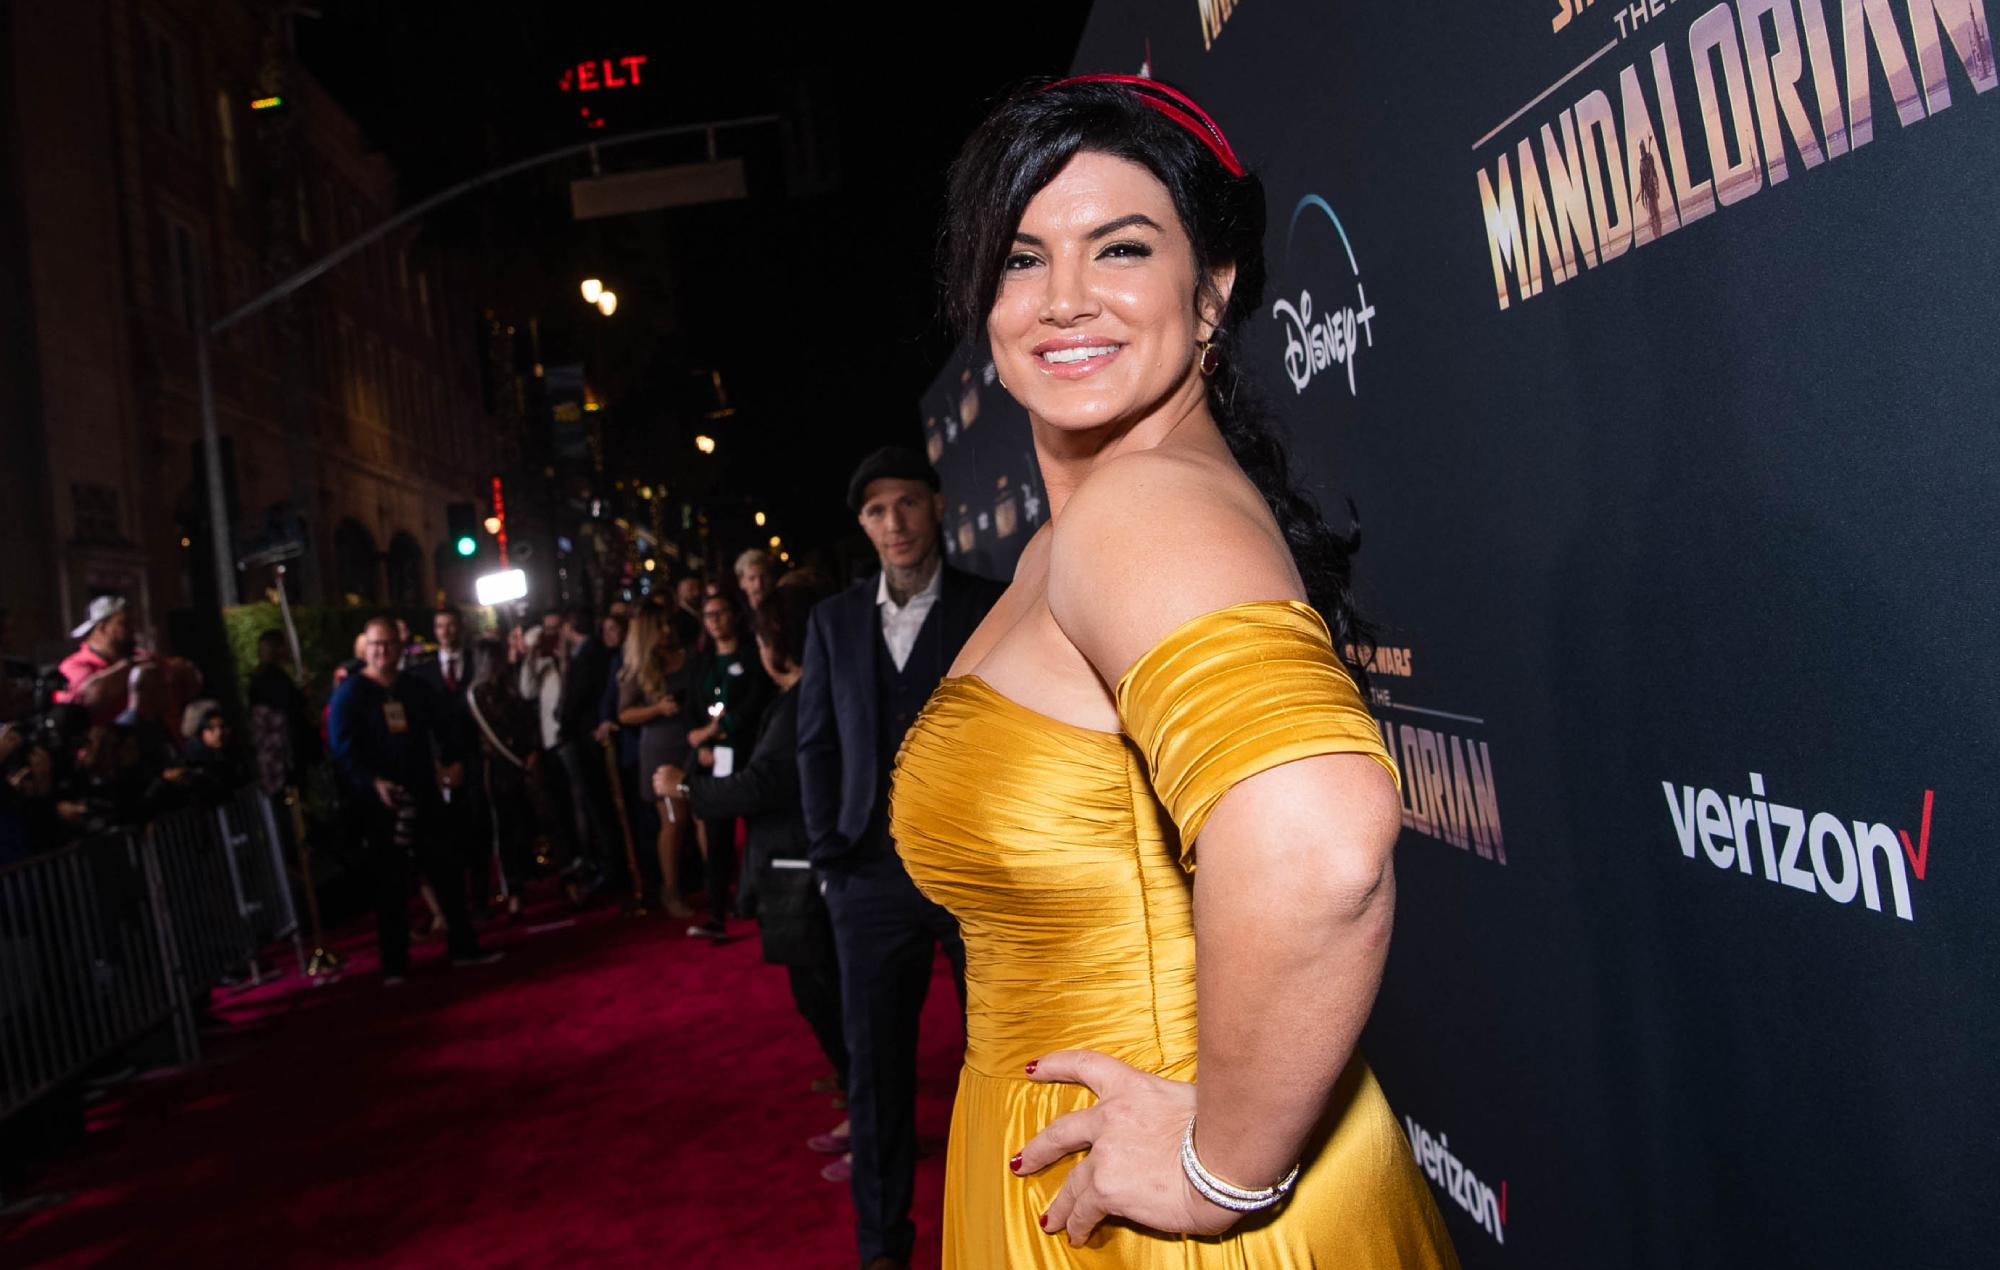 Gina Carano says Disney accidentally sent revealing email before she was fired